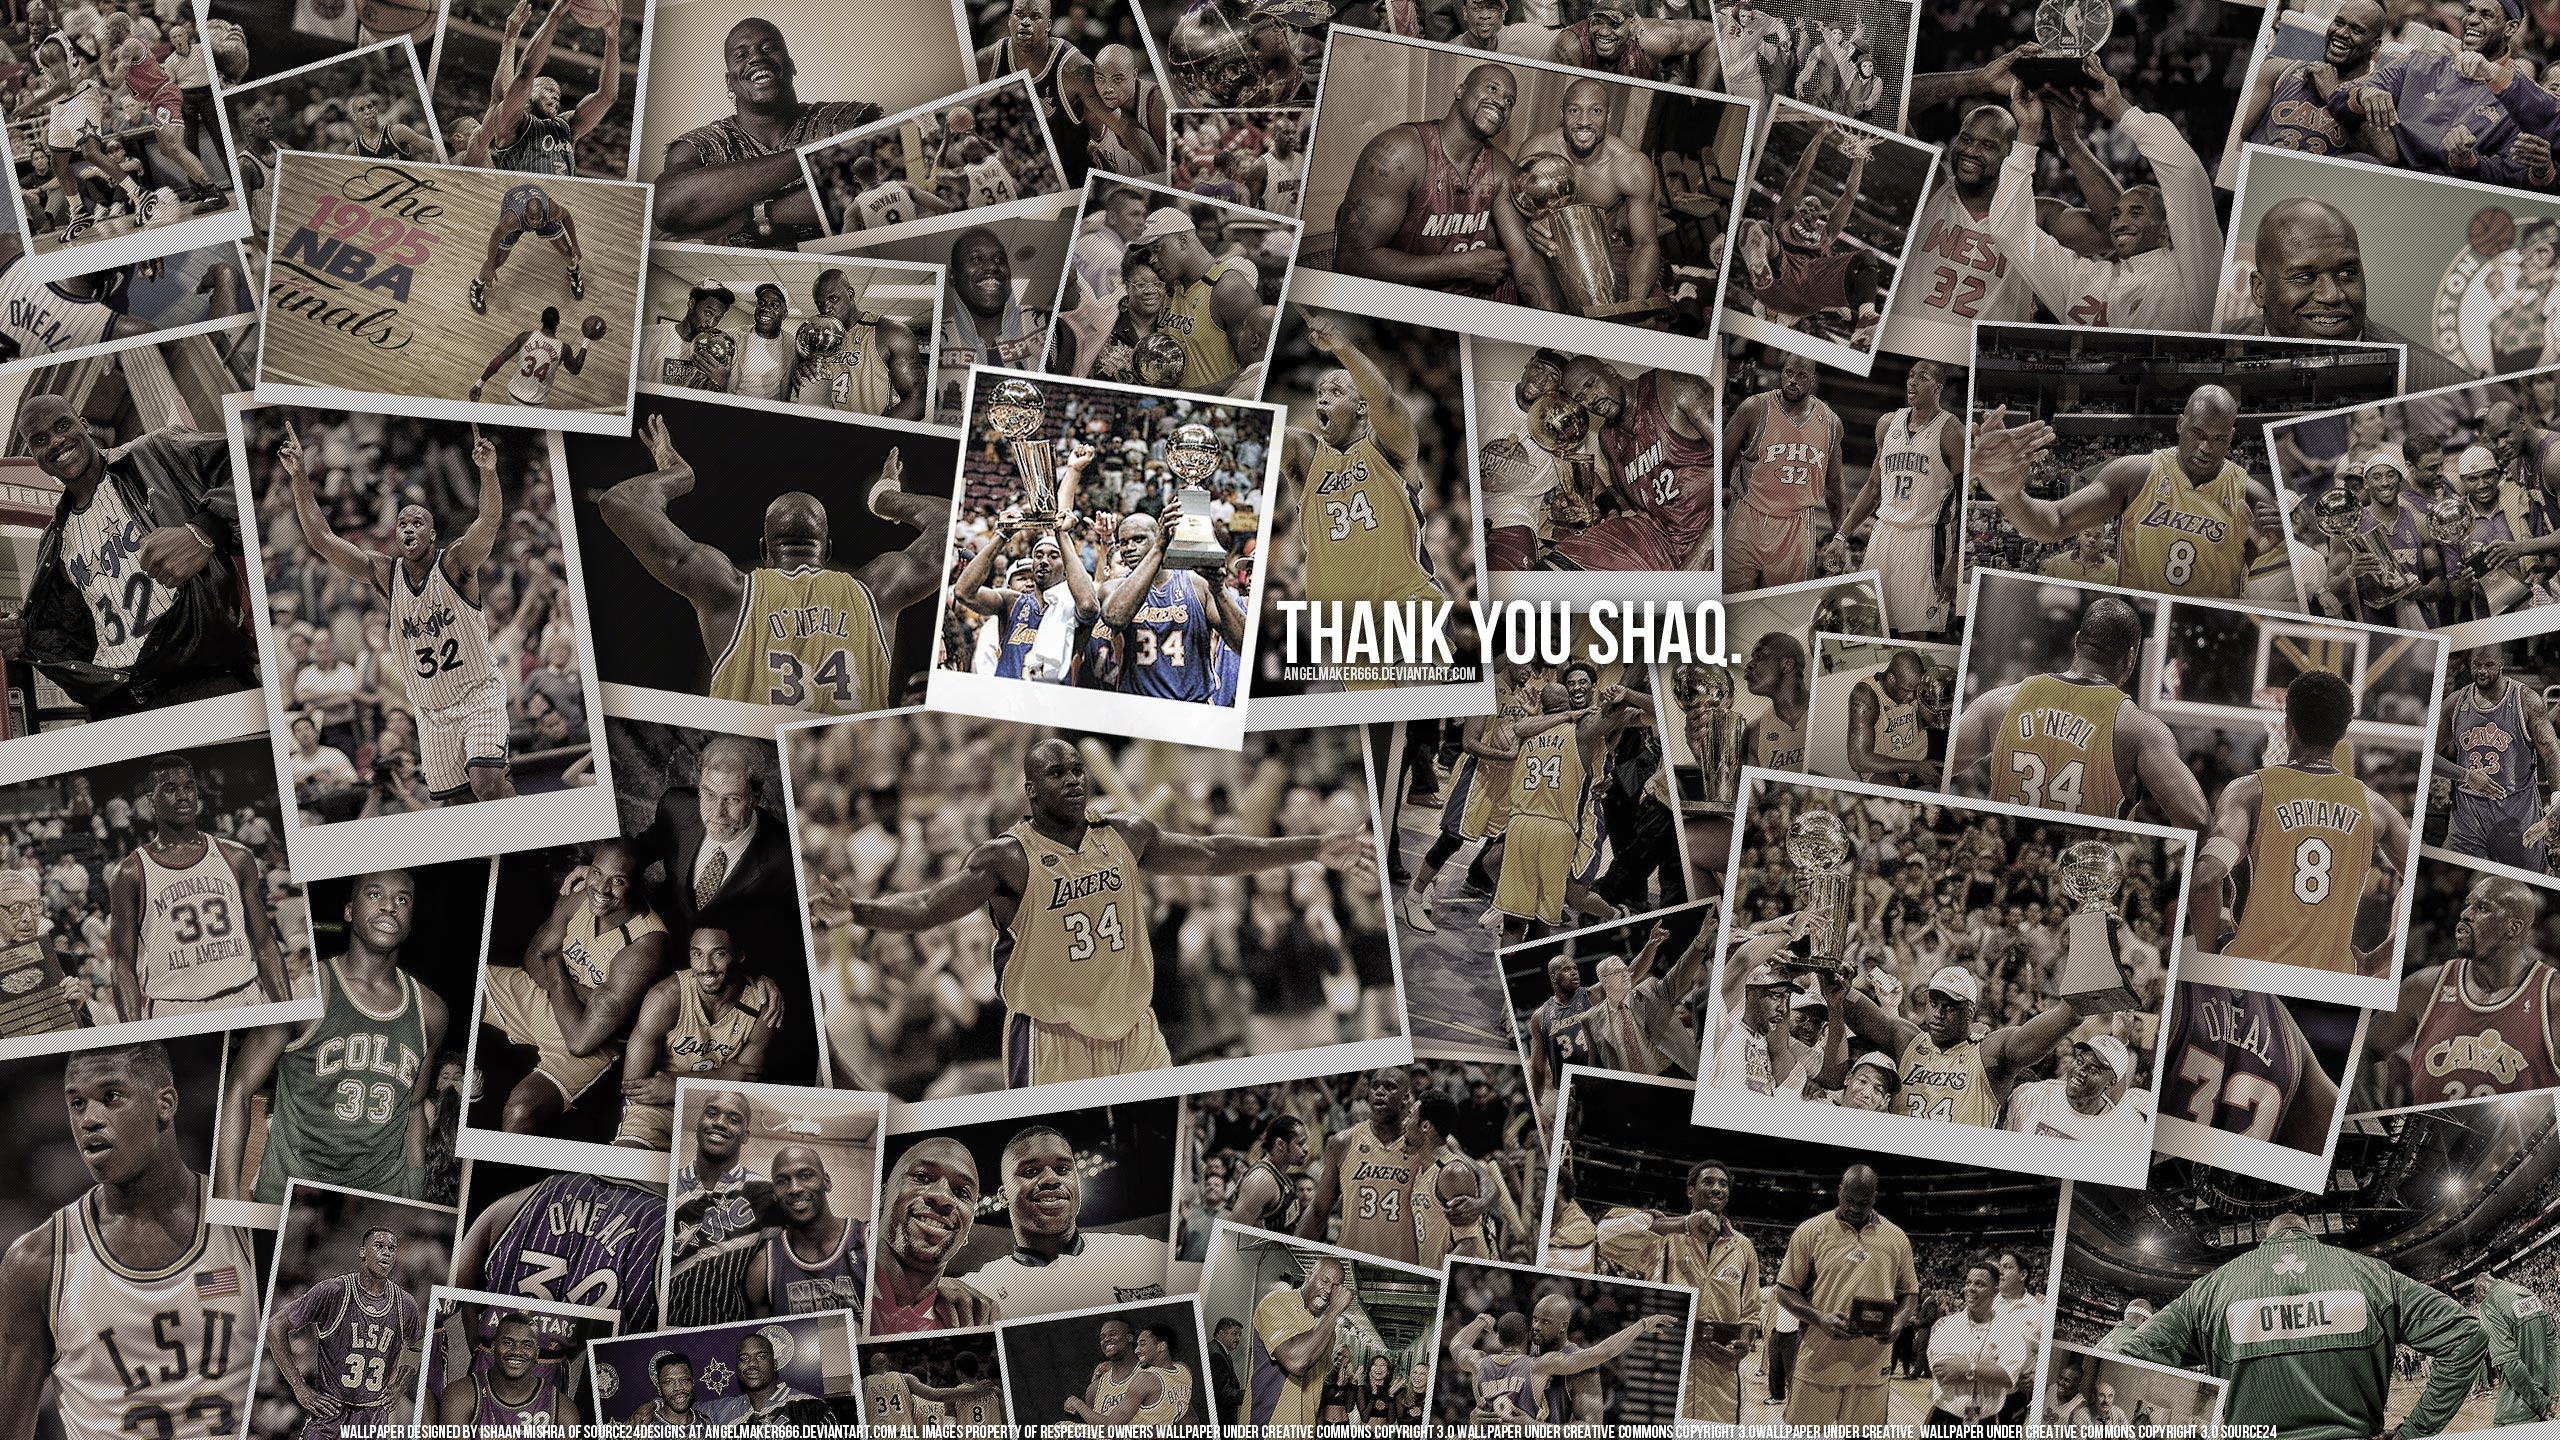 Shaquille-O-Neal-Career-Pictures-Widescreen-Wallpaper-BasketWallpapers.com-